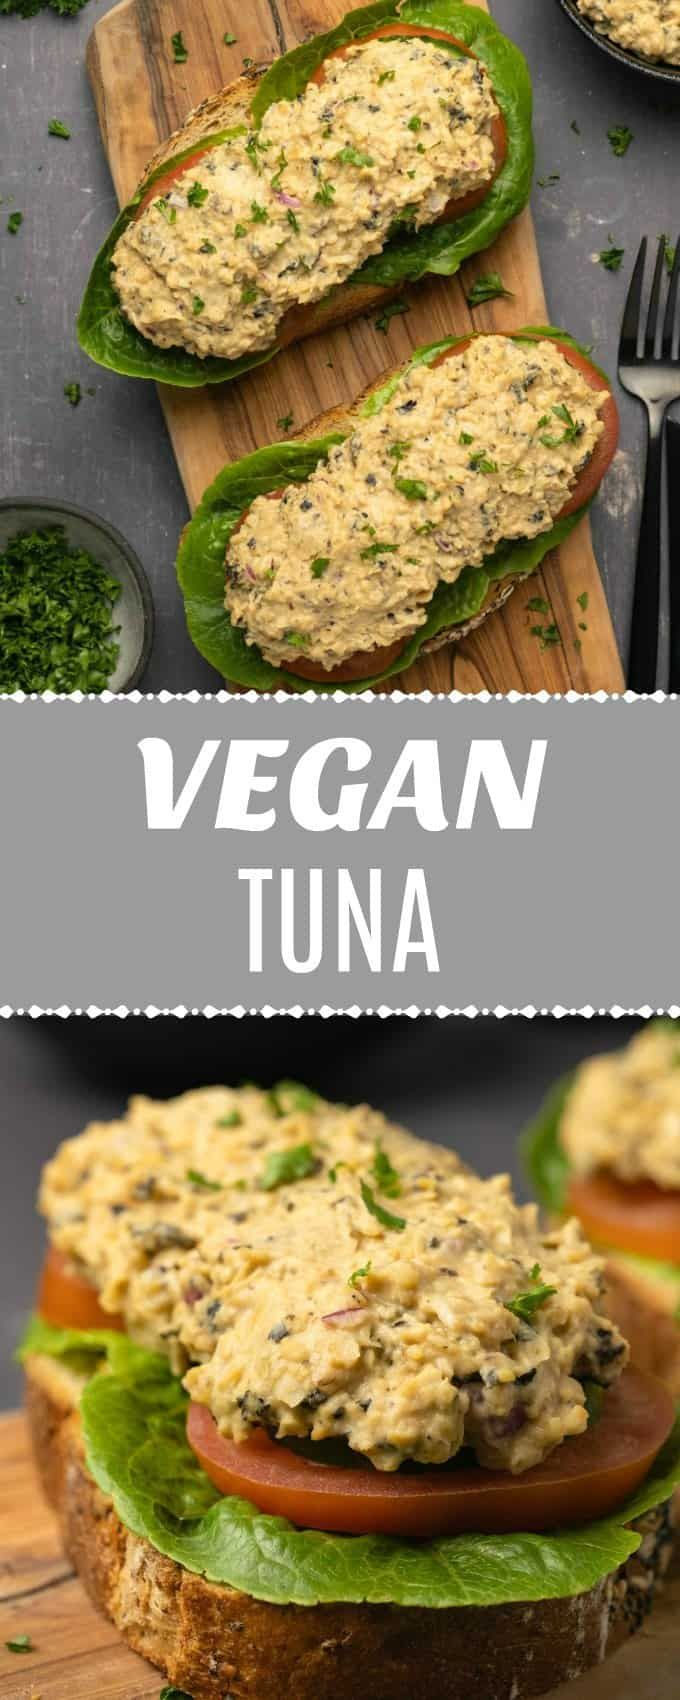 Vegan Tuna #vegetariandish